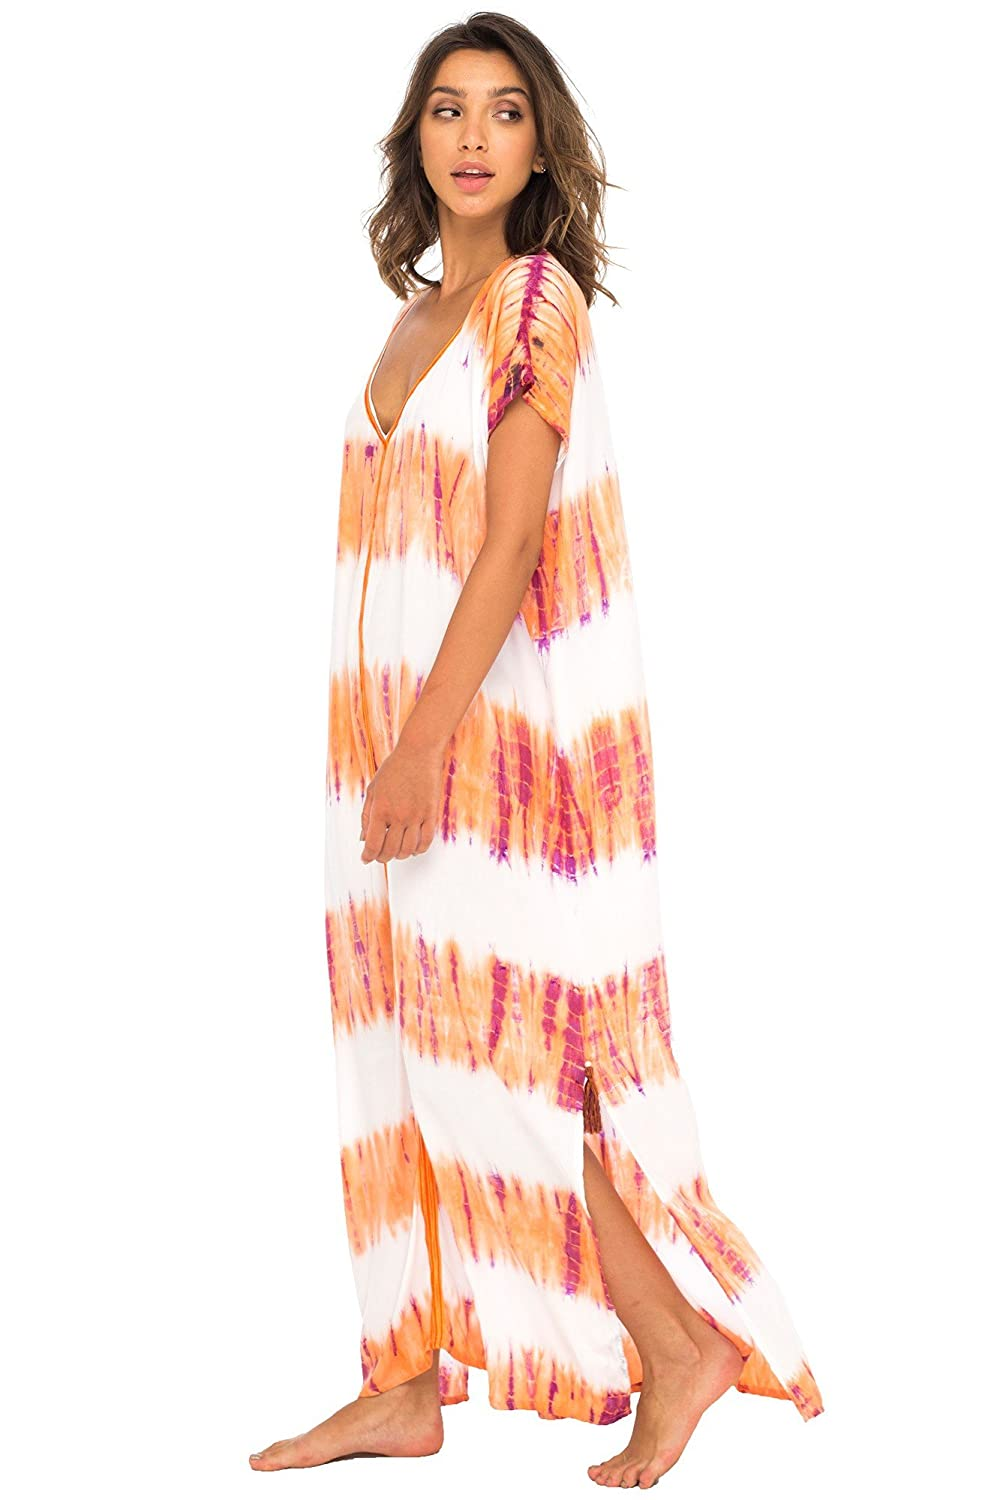 6a9c7b8c80ef5 Back From Bali Womens Long Swimsuit Bathing Suit Cover Up Maxi Beach Dress  Boho Striped Summer Dress Caftan Marine at Amazon Women's Clothing store: